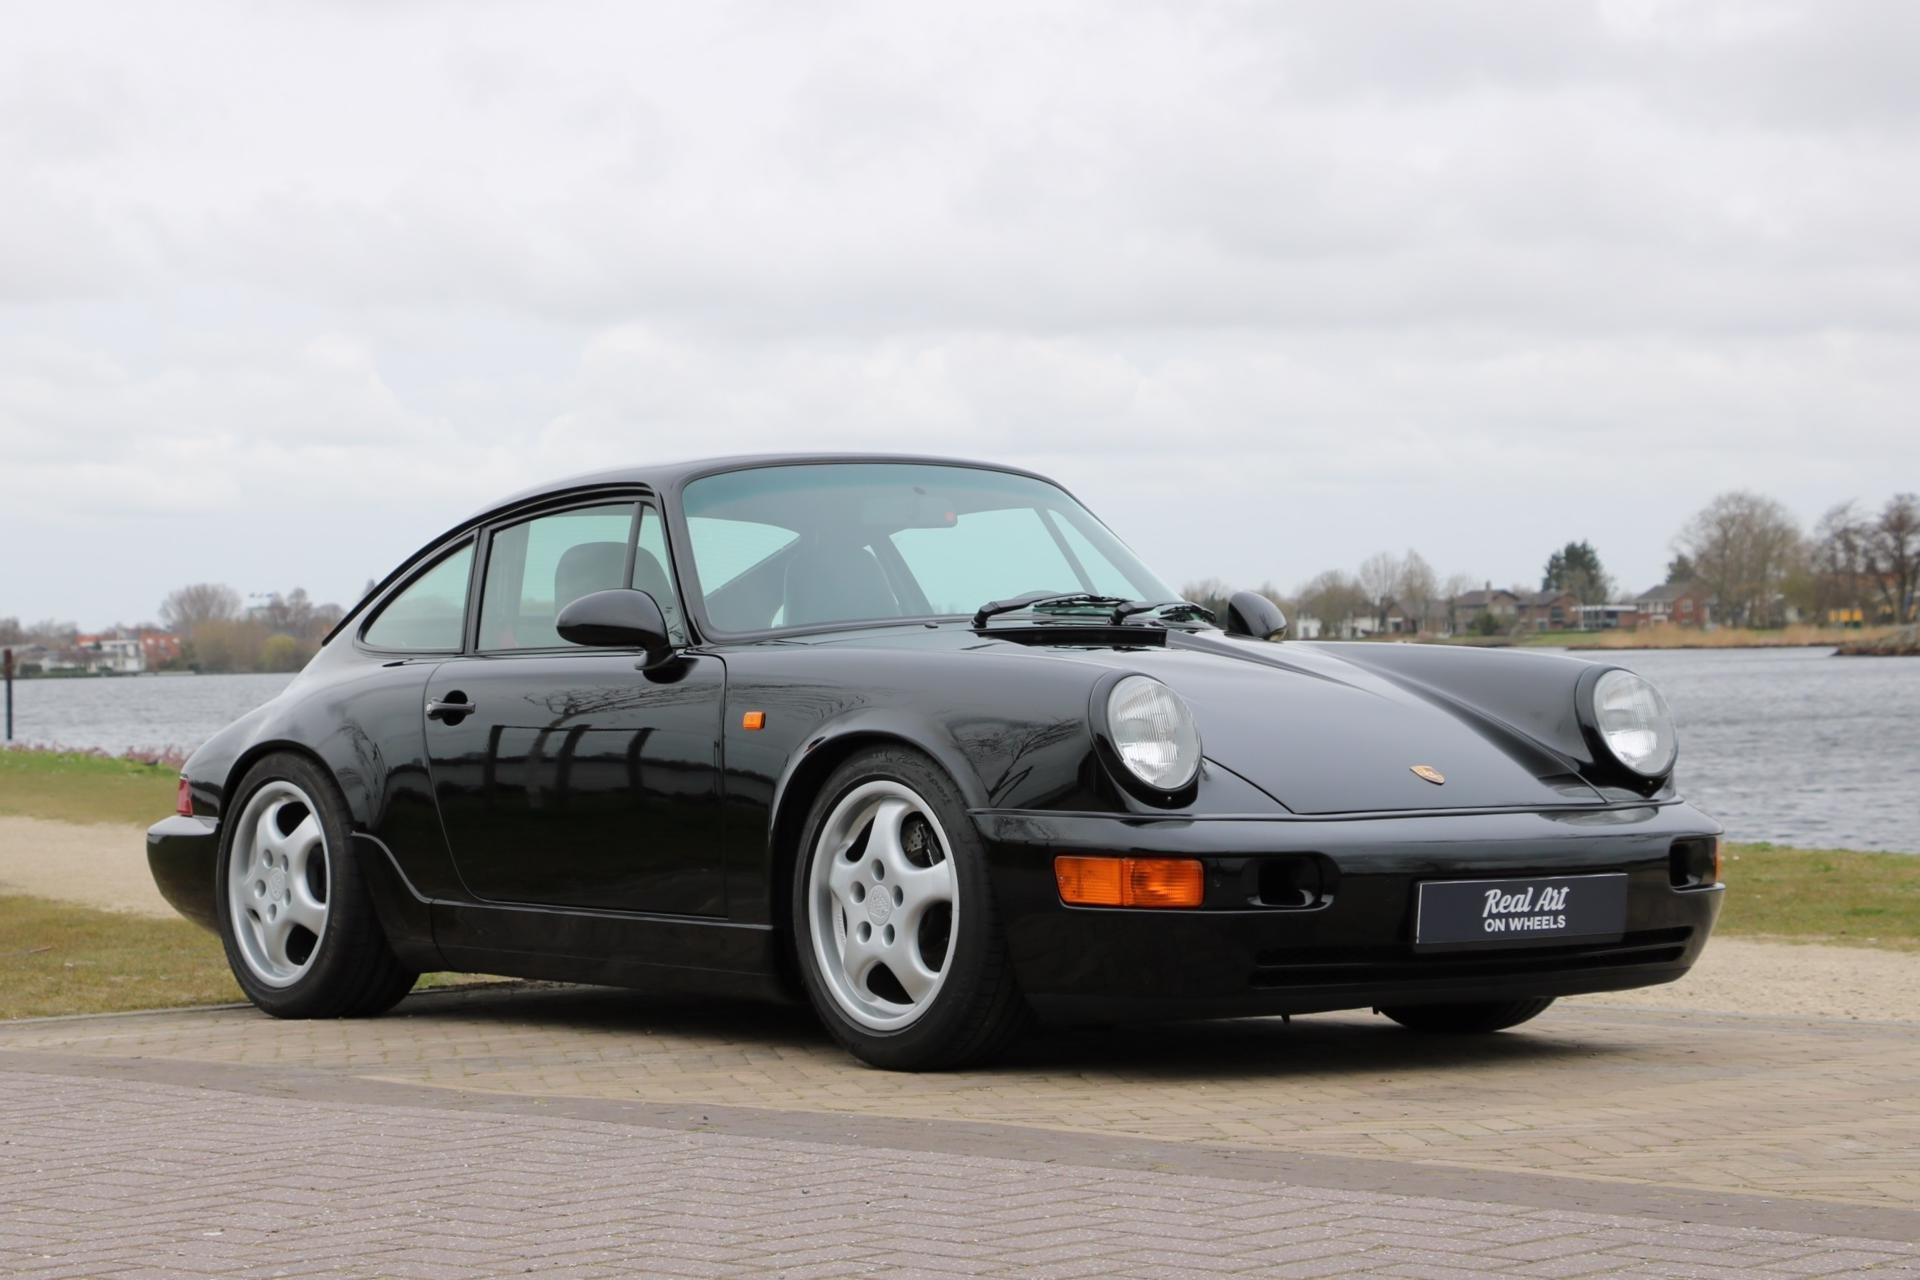 Real Art on Wheels | Porsche 964RS